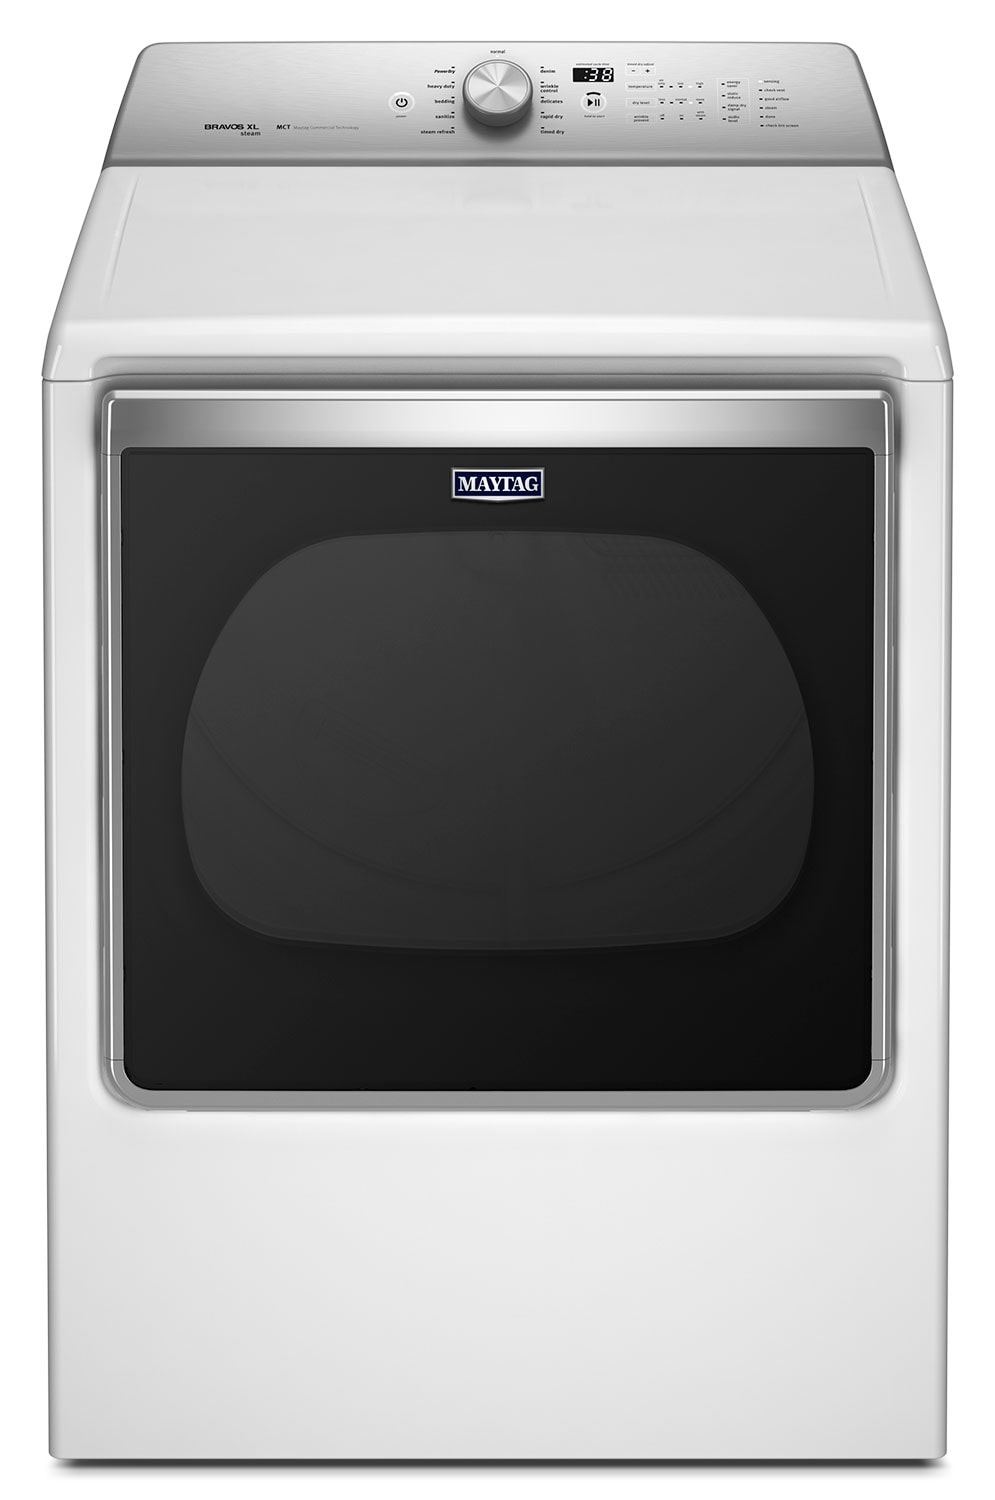 Washers and Dryers - Maytag Electric Dryer (8.8 Cu. Ft.) YMEDB855DW